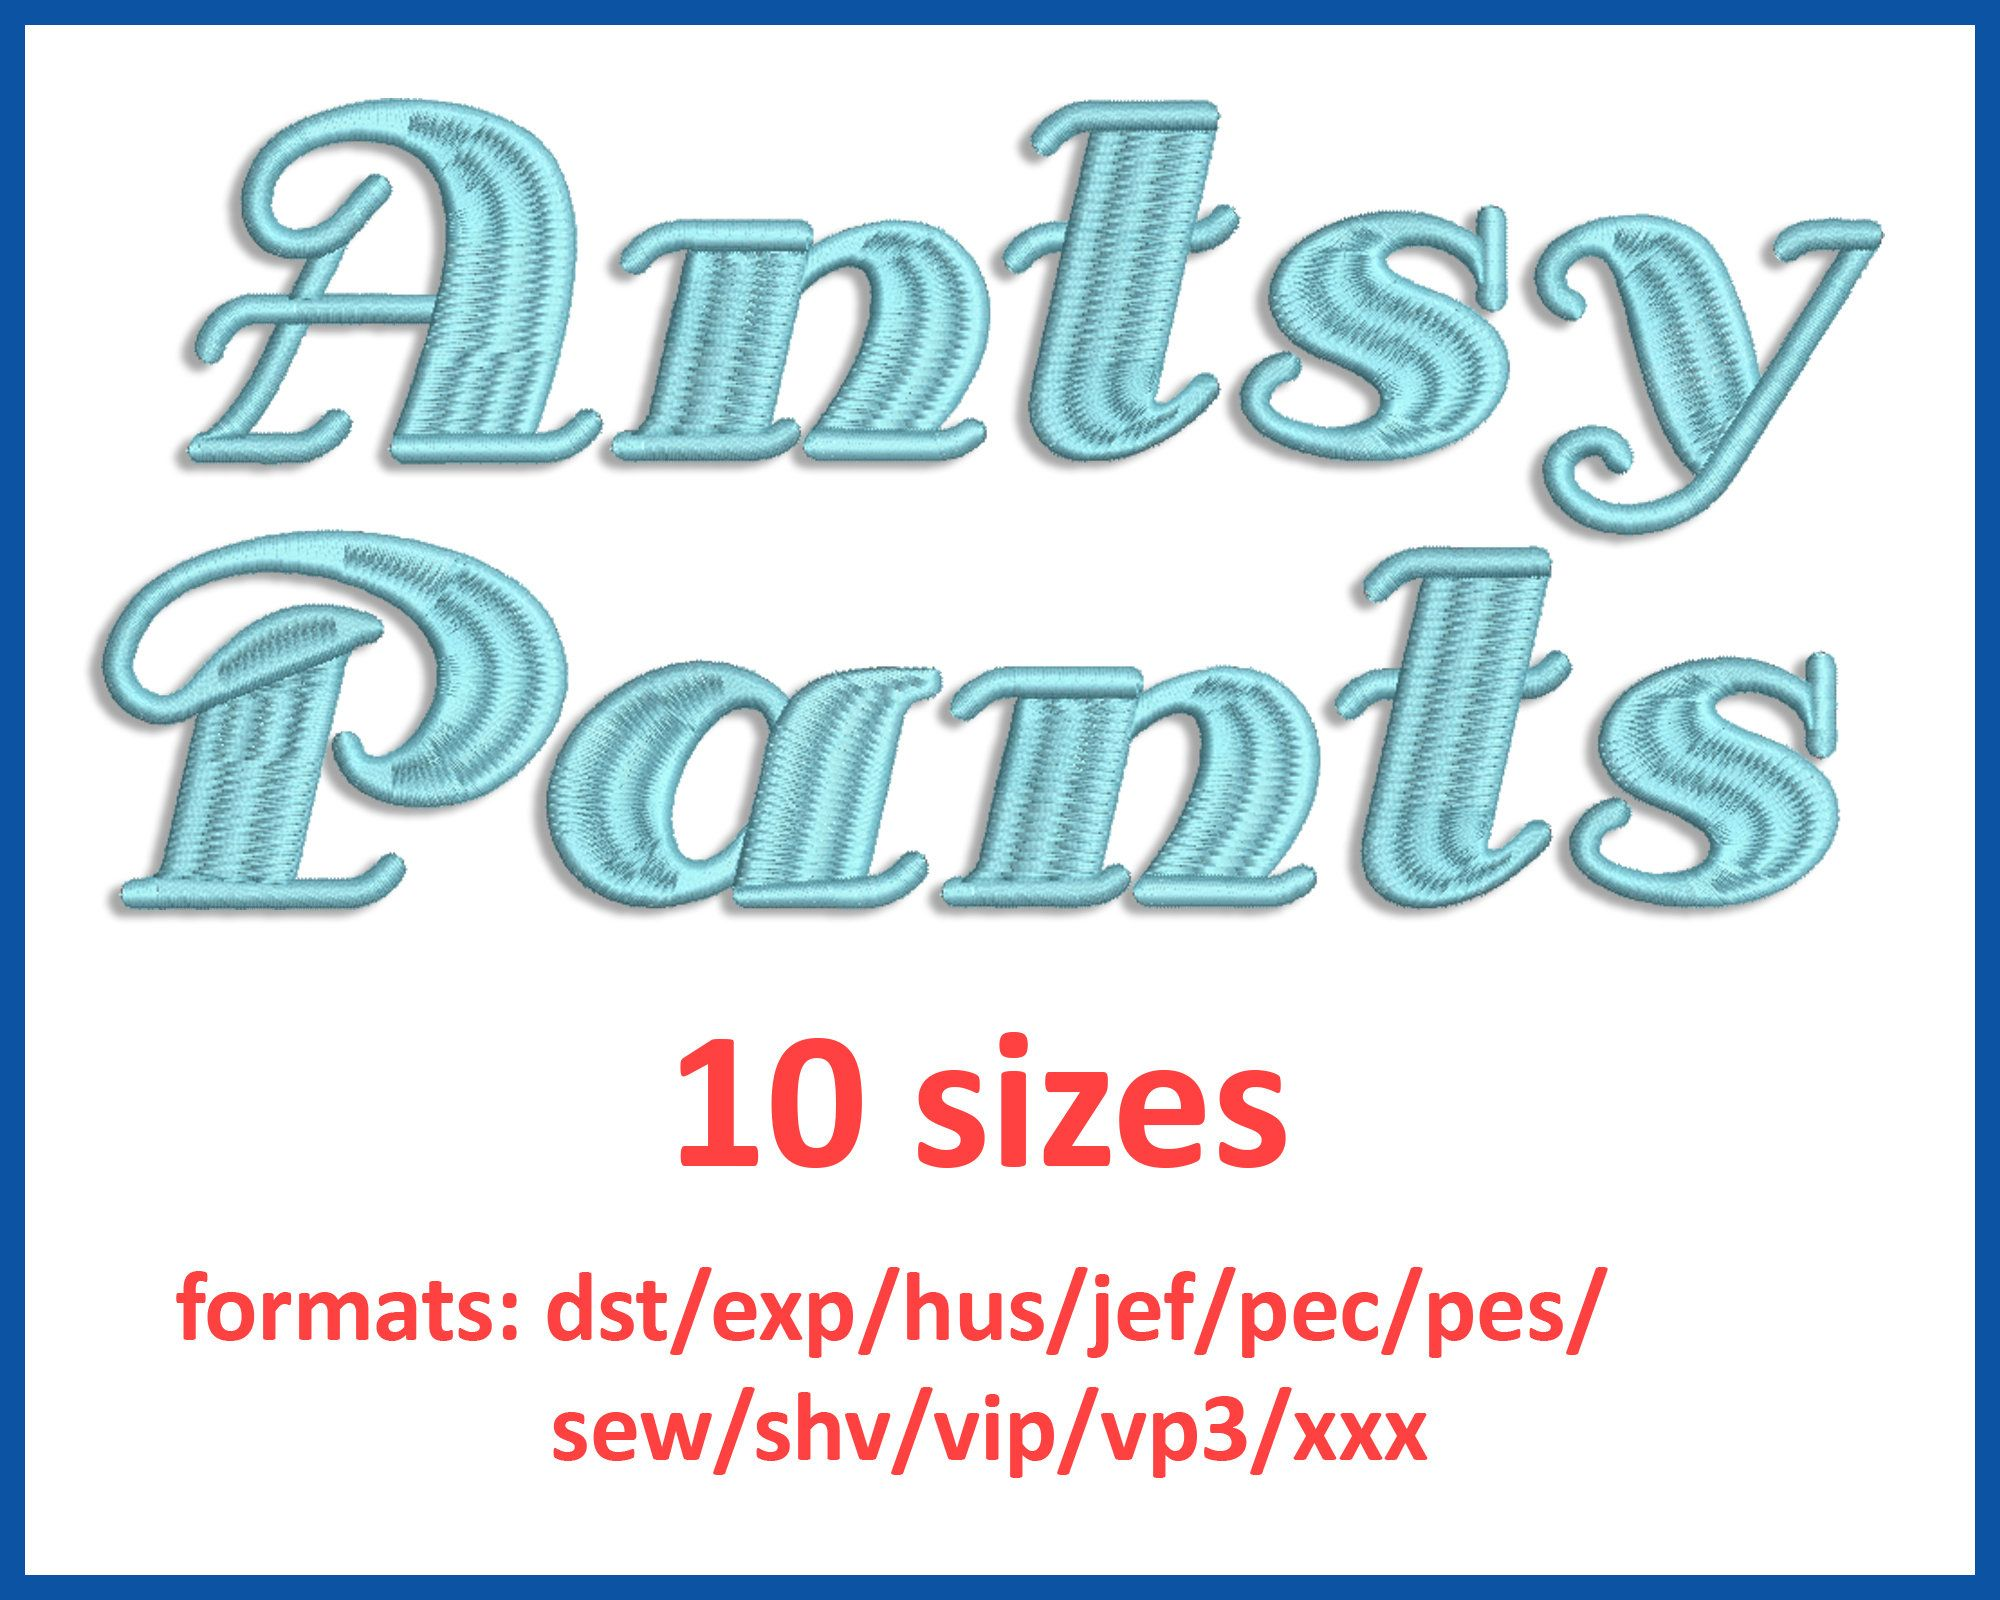 Antsy Pants embroidery font 10 sizes 0.5(1/2), 1, 1.5, 2